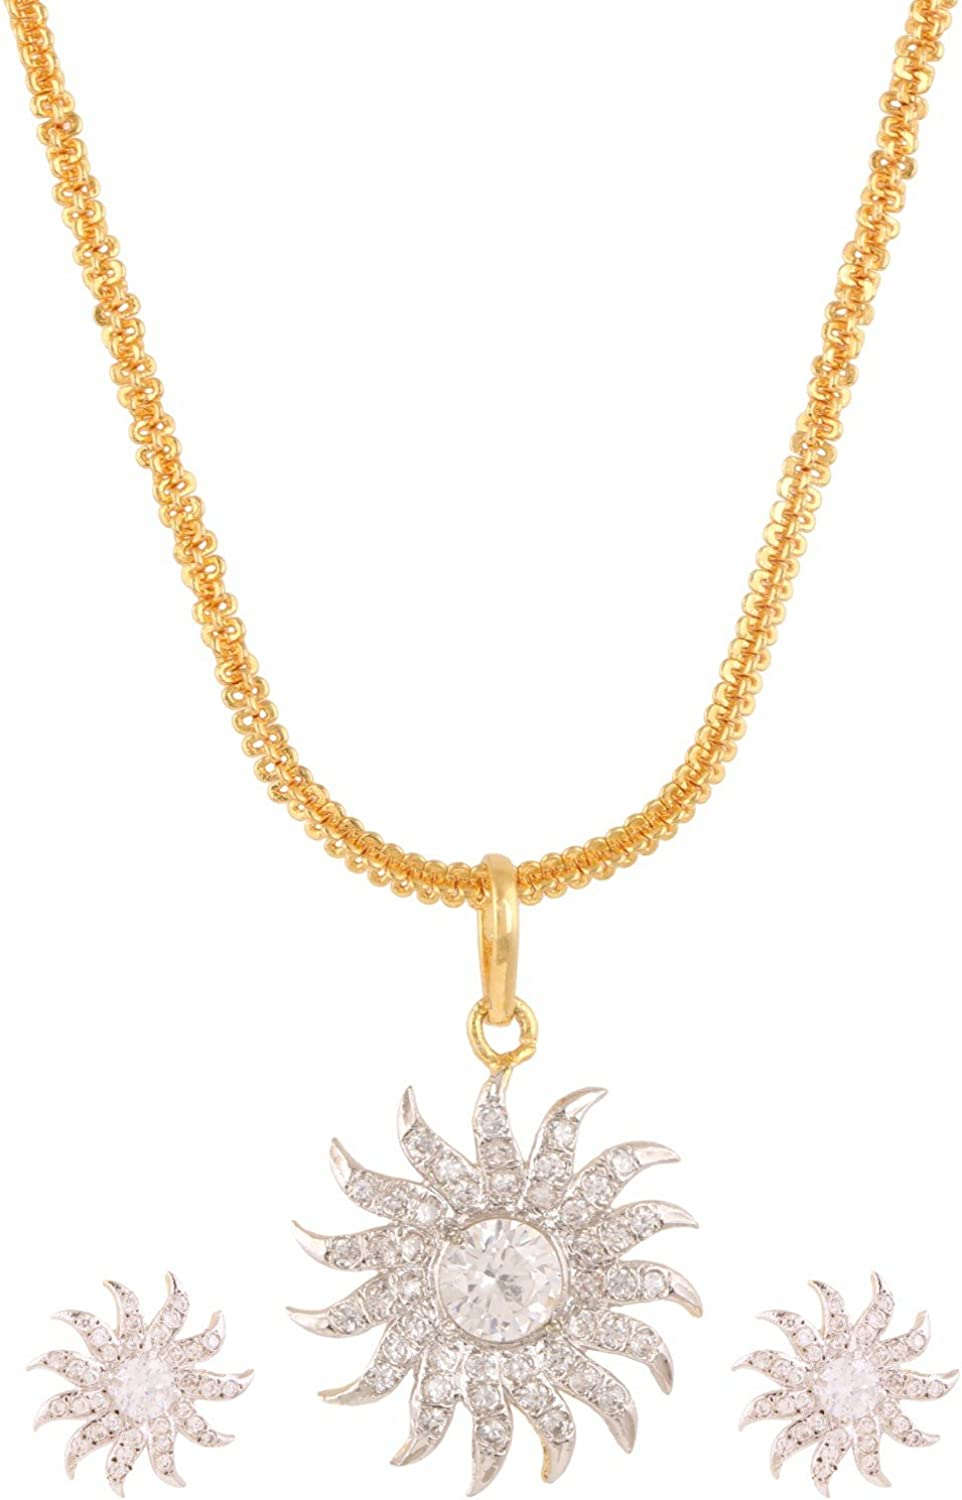 Efulgenz Indian White Fashion Pendant Necklace with Chain and Earrings Jewelry for Girls/Women